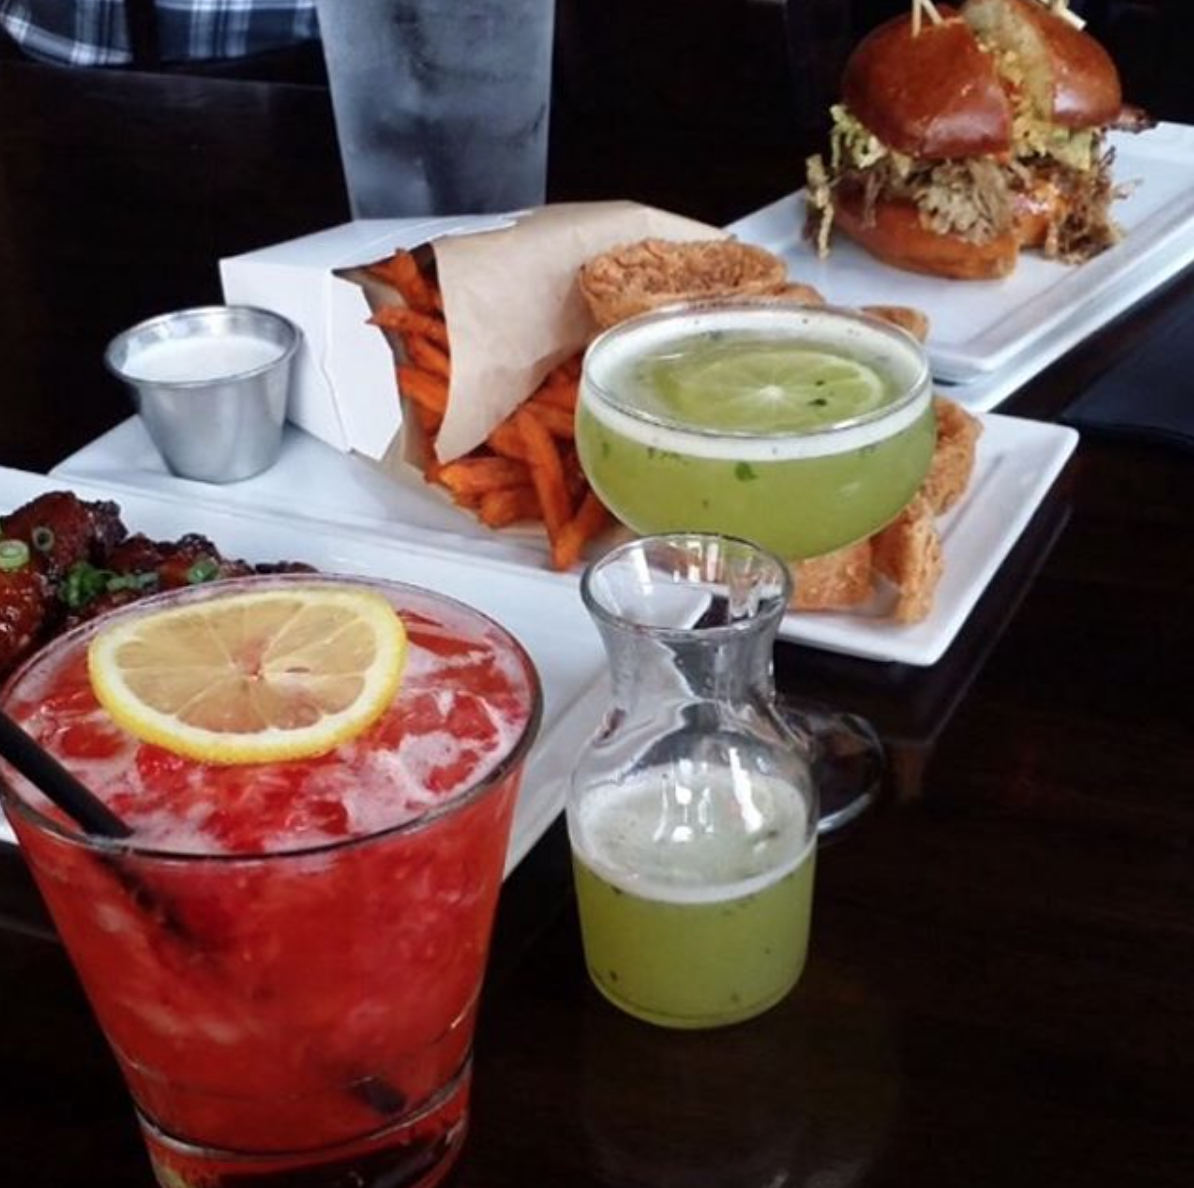 25 Degrees' wells and sweet potato fries are all up for grabs during happy hour | Photo courtesy of 25 Degrees HB via Instagram